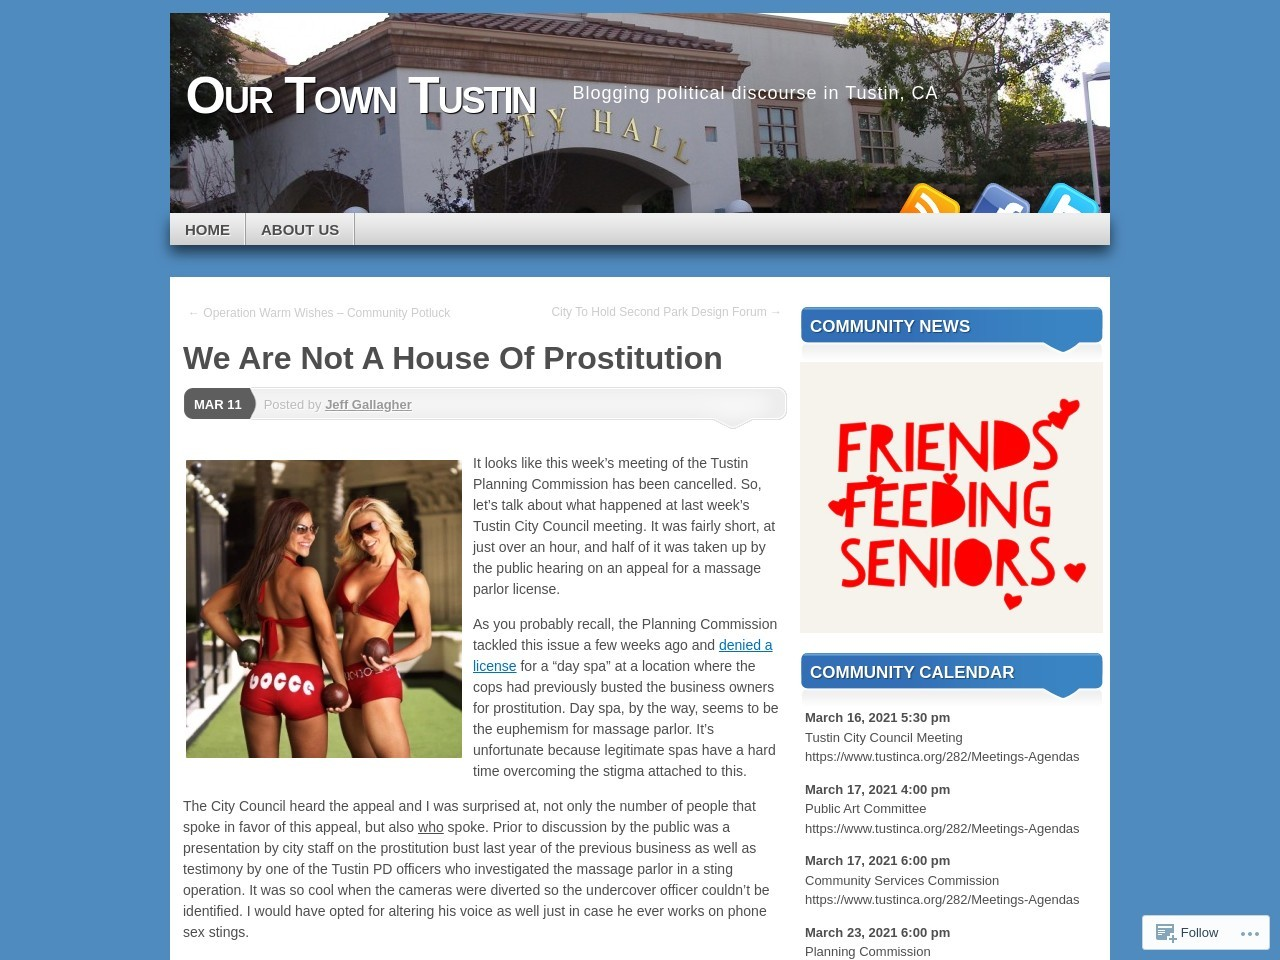 We Are Not A House Of Prostitution | Our Town Tustin